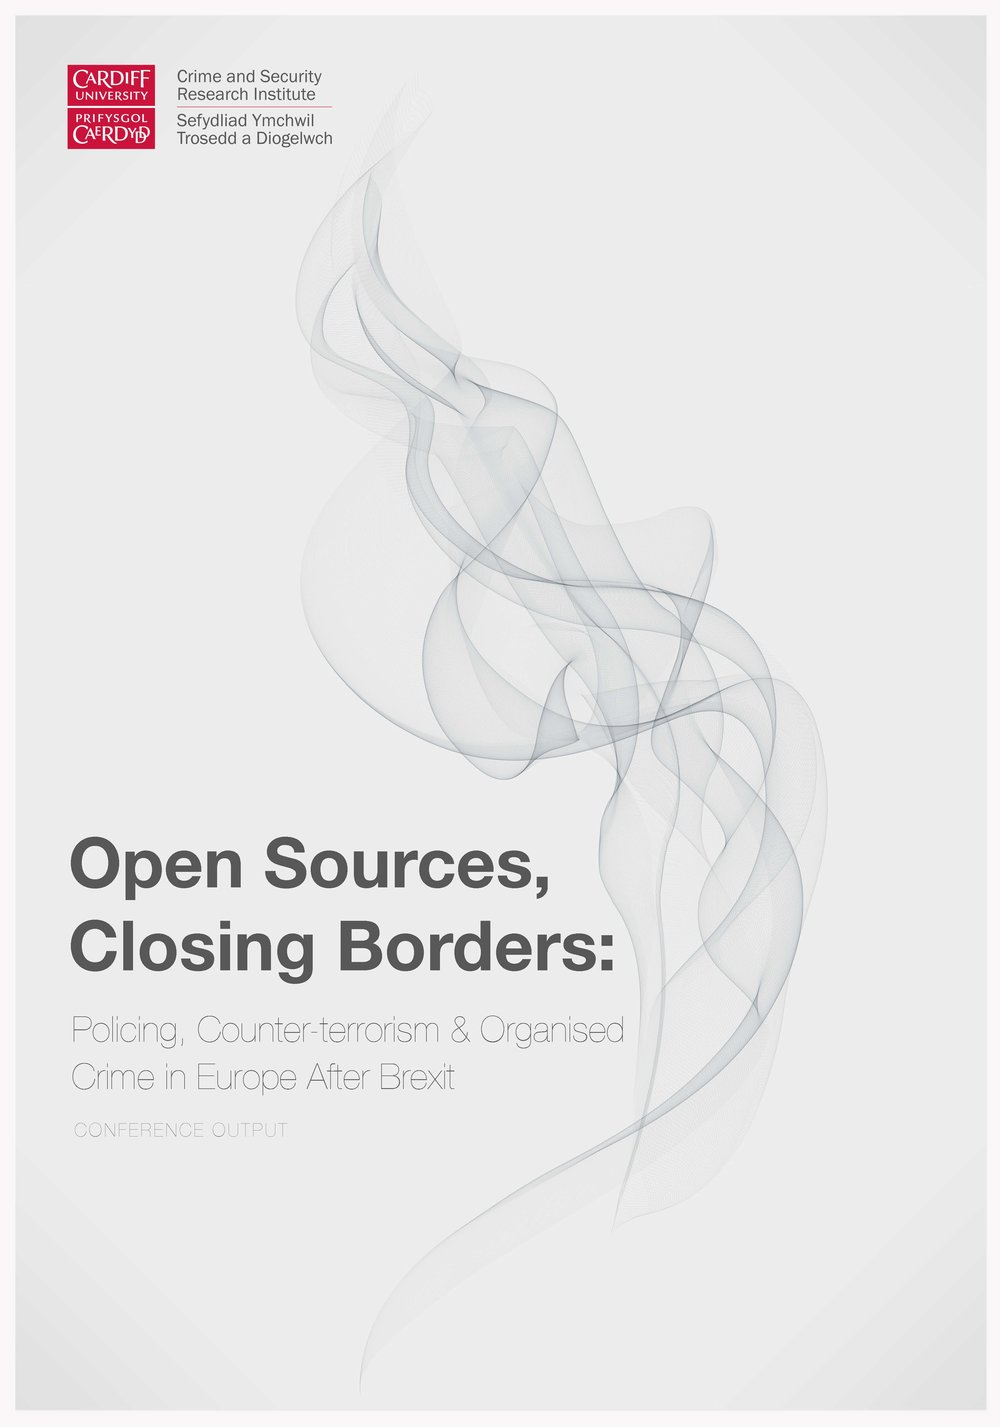 Open Sources, Closing Borders: Policing, Counter-terrorism and Organised Crime in Europe After Brexit -